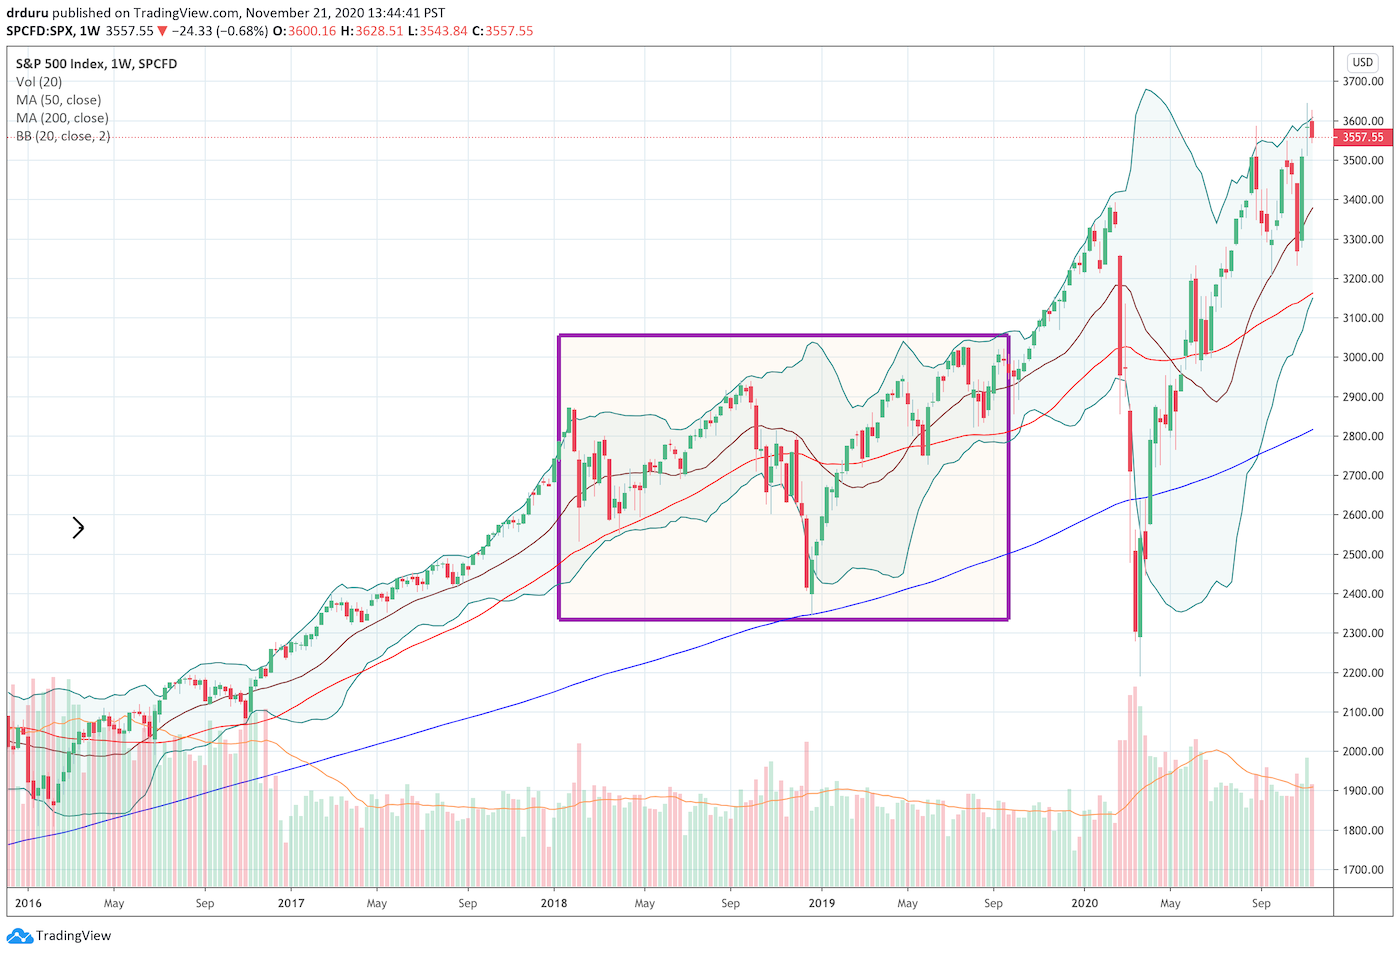 This weekly chart of the S&P 500 (SPY) shows how a major rally going into 2018 hit a brick wall until priming from the Fed nudged the index into a fresh breakout.